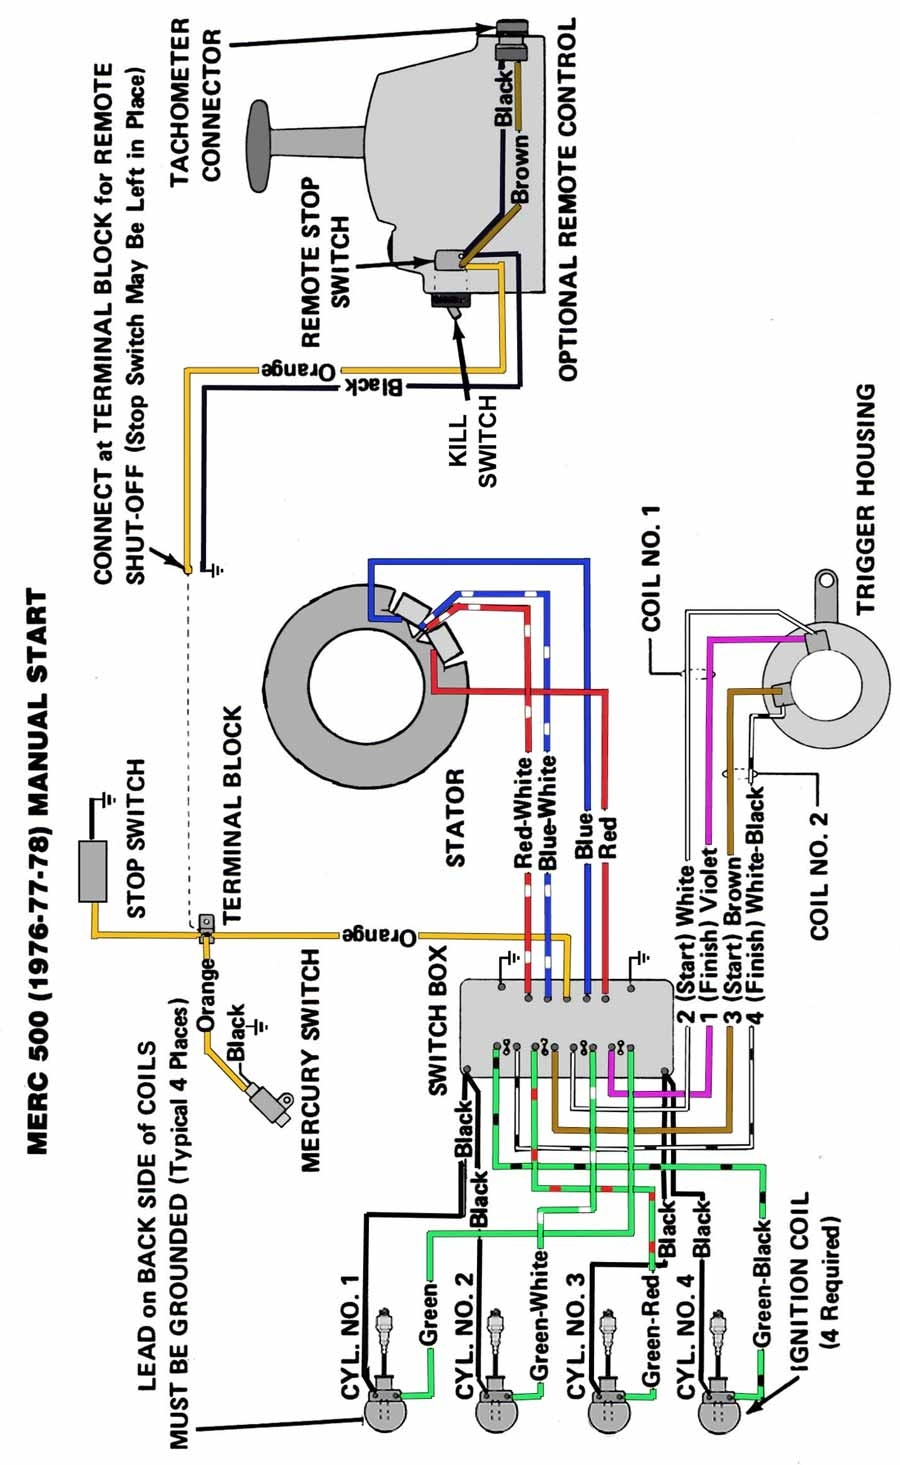 mercury outboard wiring diagrams mastertech marin intended for 76 evinrude wiring diagram?resize\=665%2C1082\&ssl\=1 mercury 200 wiring diagram wiring diagram shrutiradio mercury 200 optimax engine wiring diagram at soozxer.org